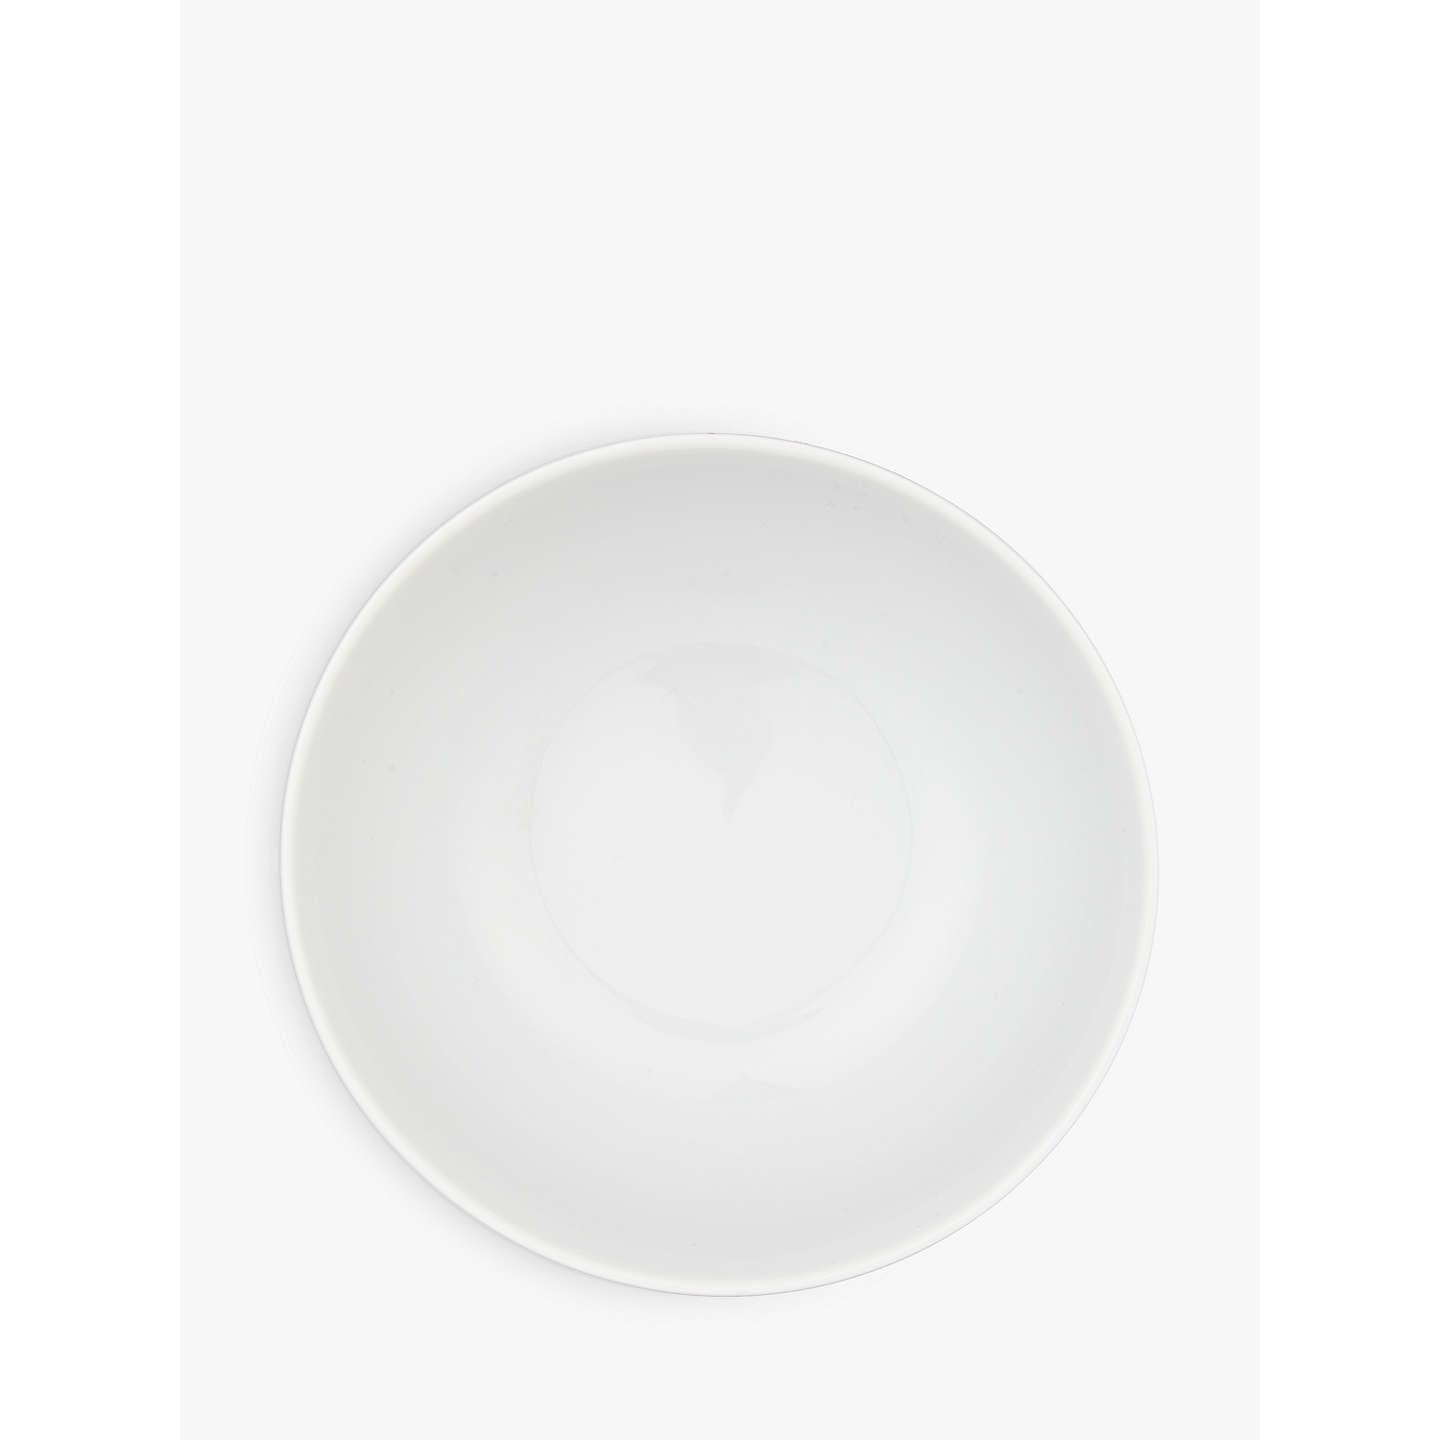 BuyHouse by John Lewis Eat 14.5cm Cereal Bowl, White Online at johnlewis.com